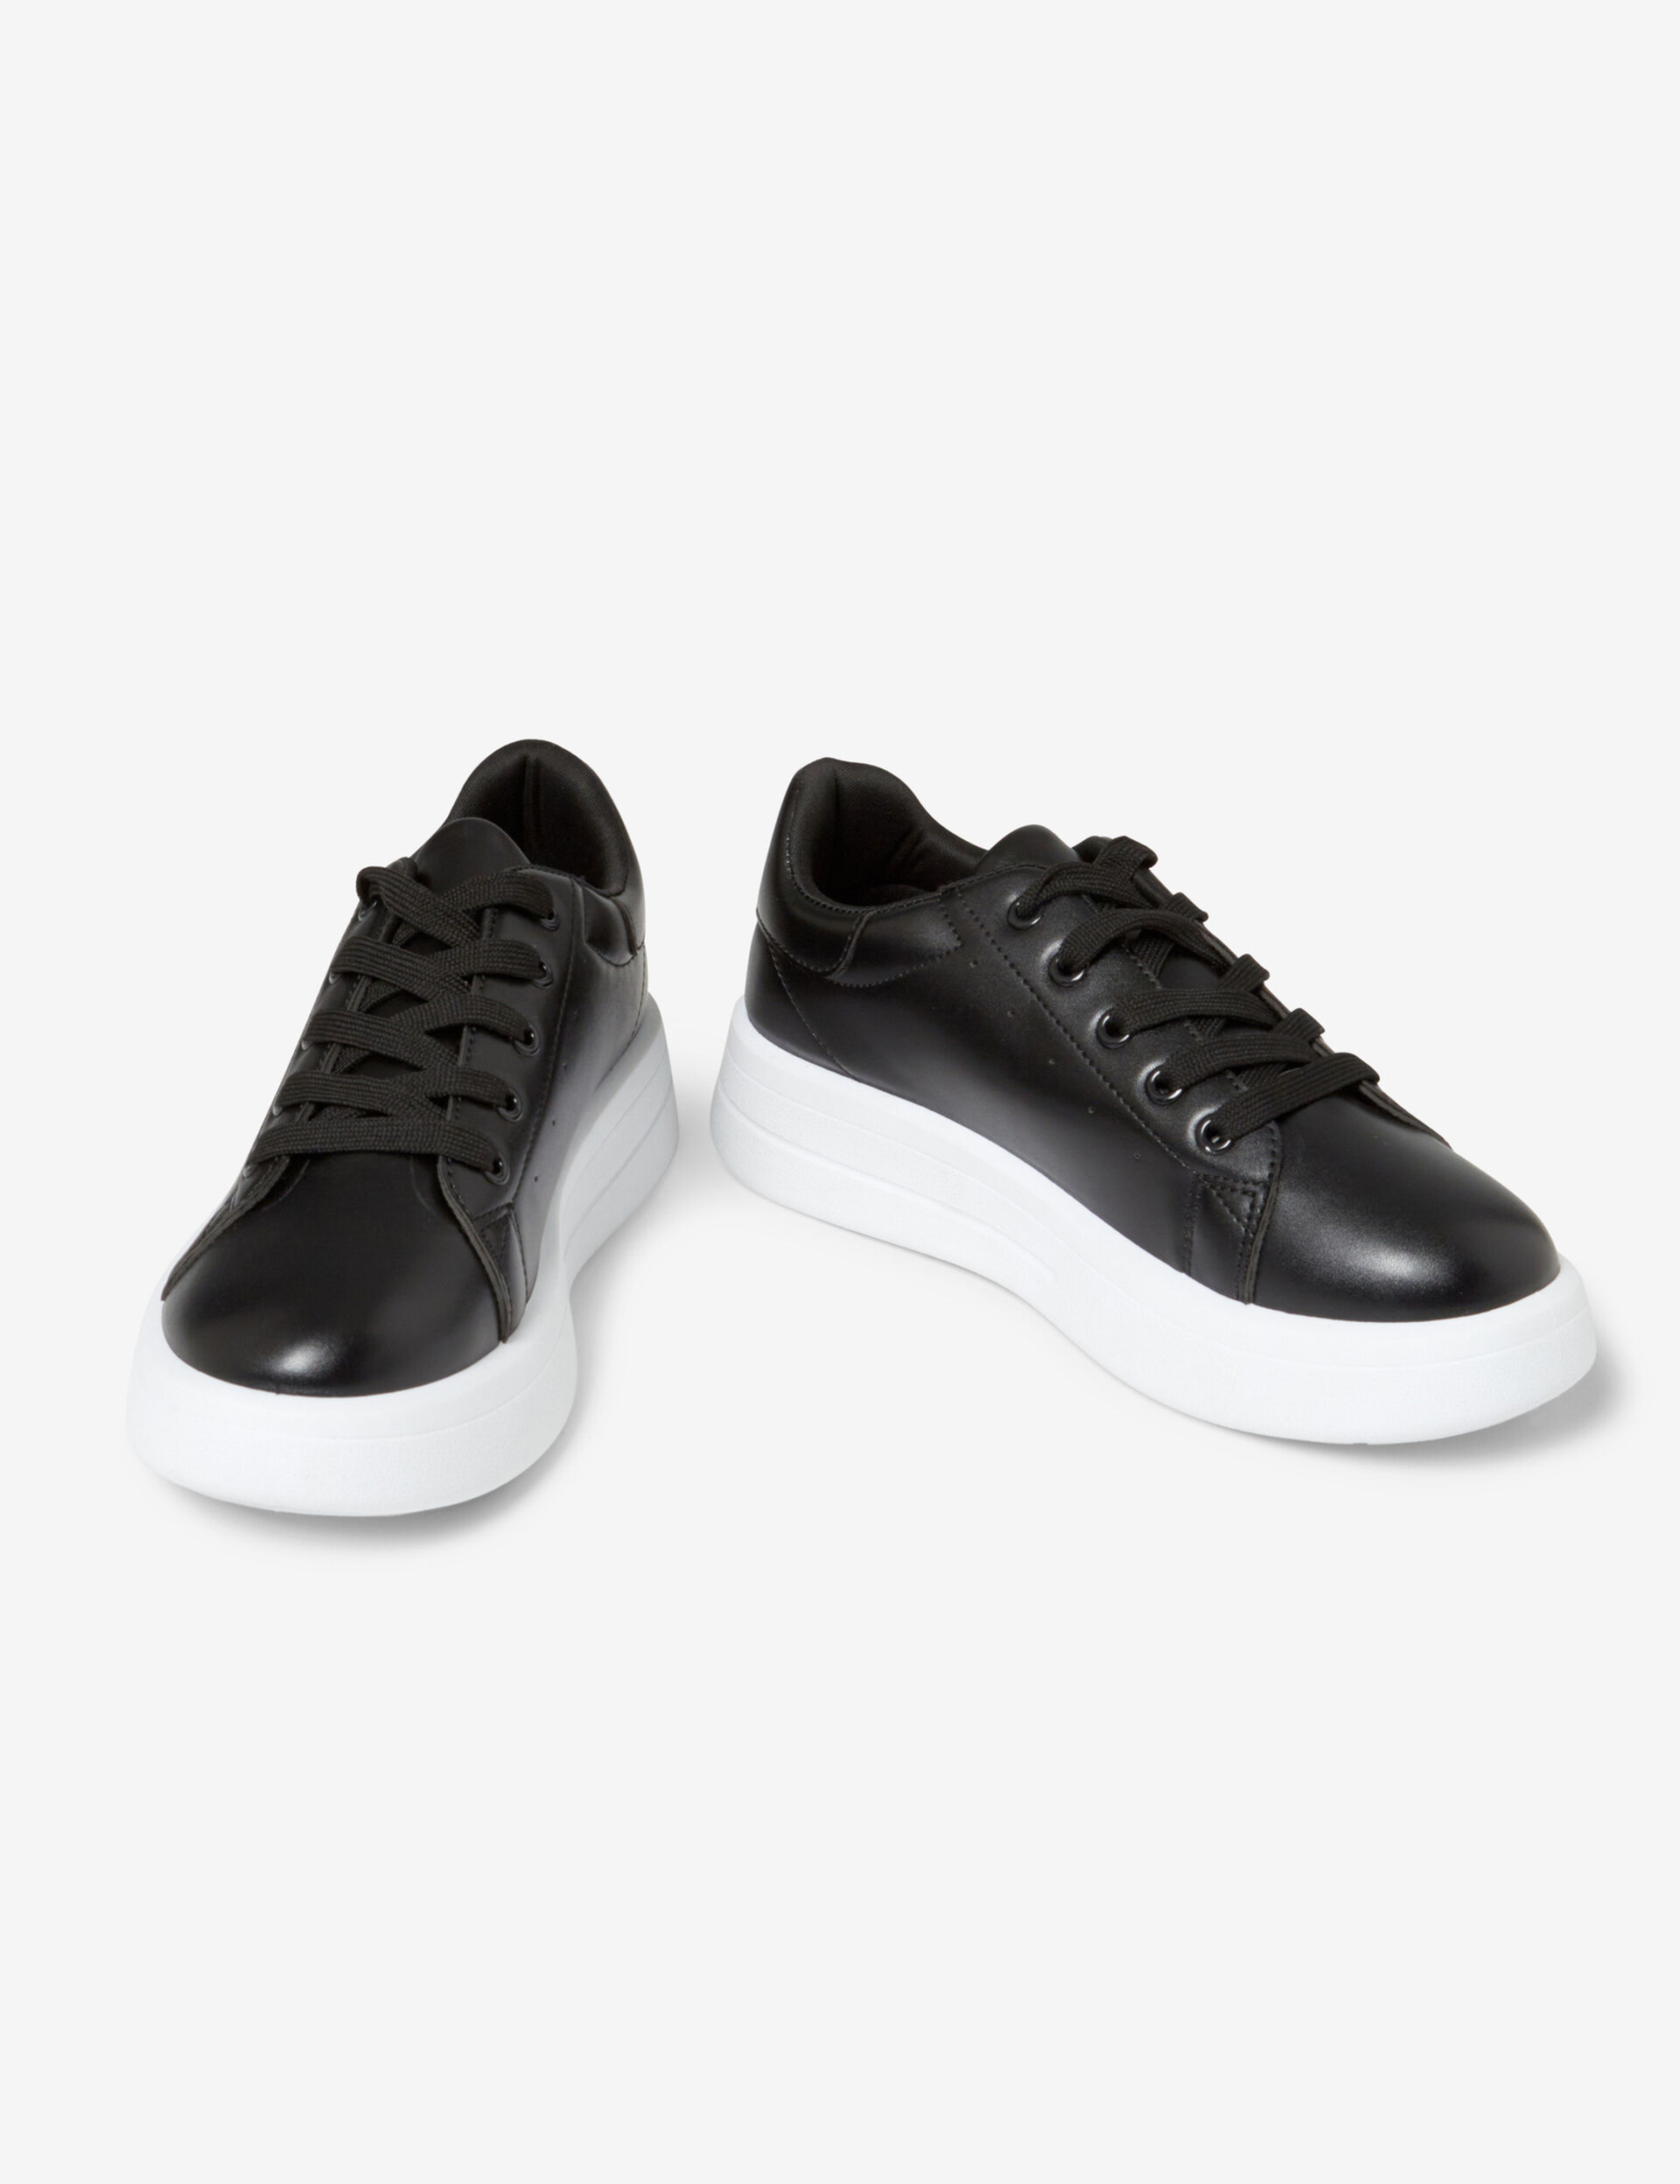 Imitation leather trainers